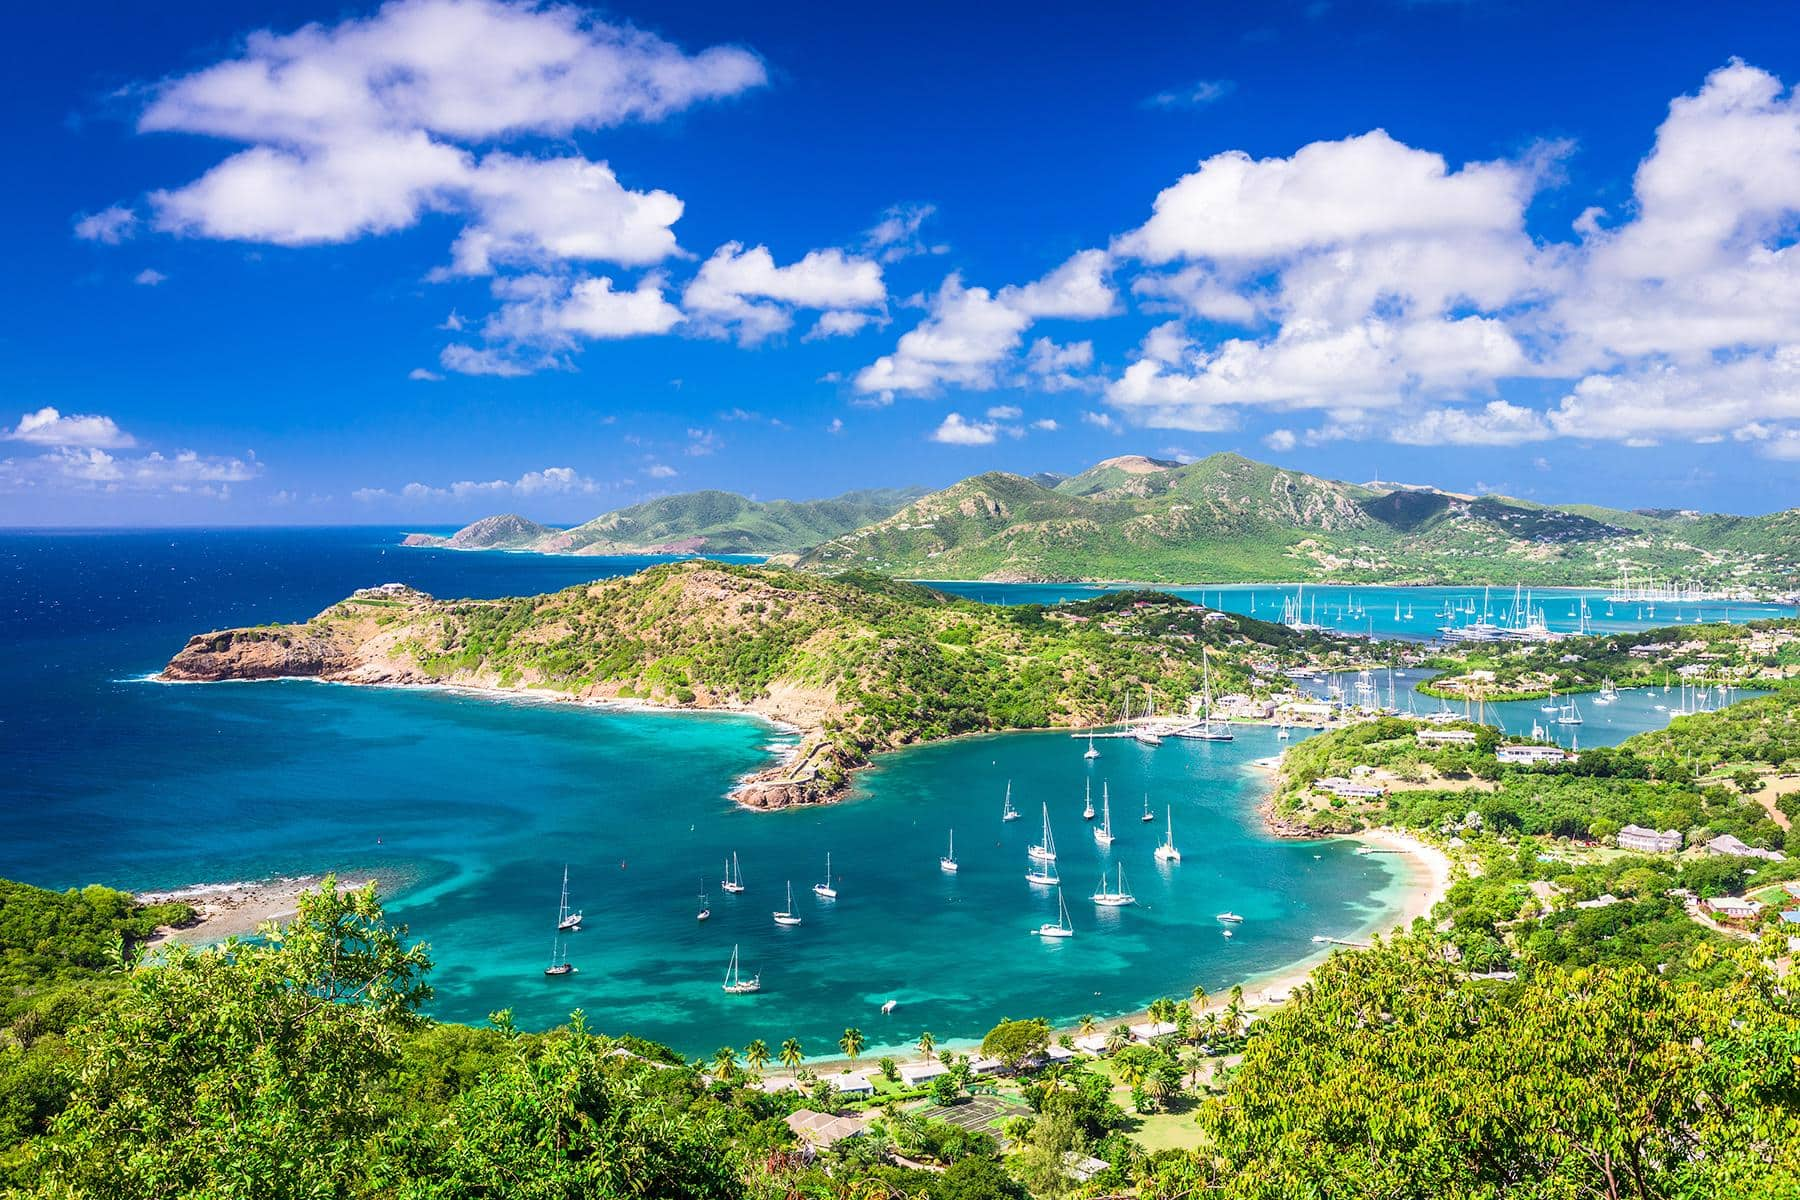 New Jersey to Antigua Caribbean $281 RT Nonstop Airfares on JetBlue Basic (Travel August - October 2021)